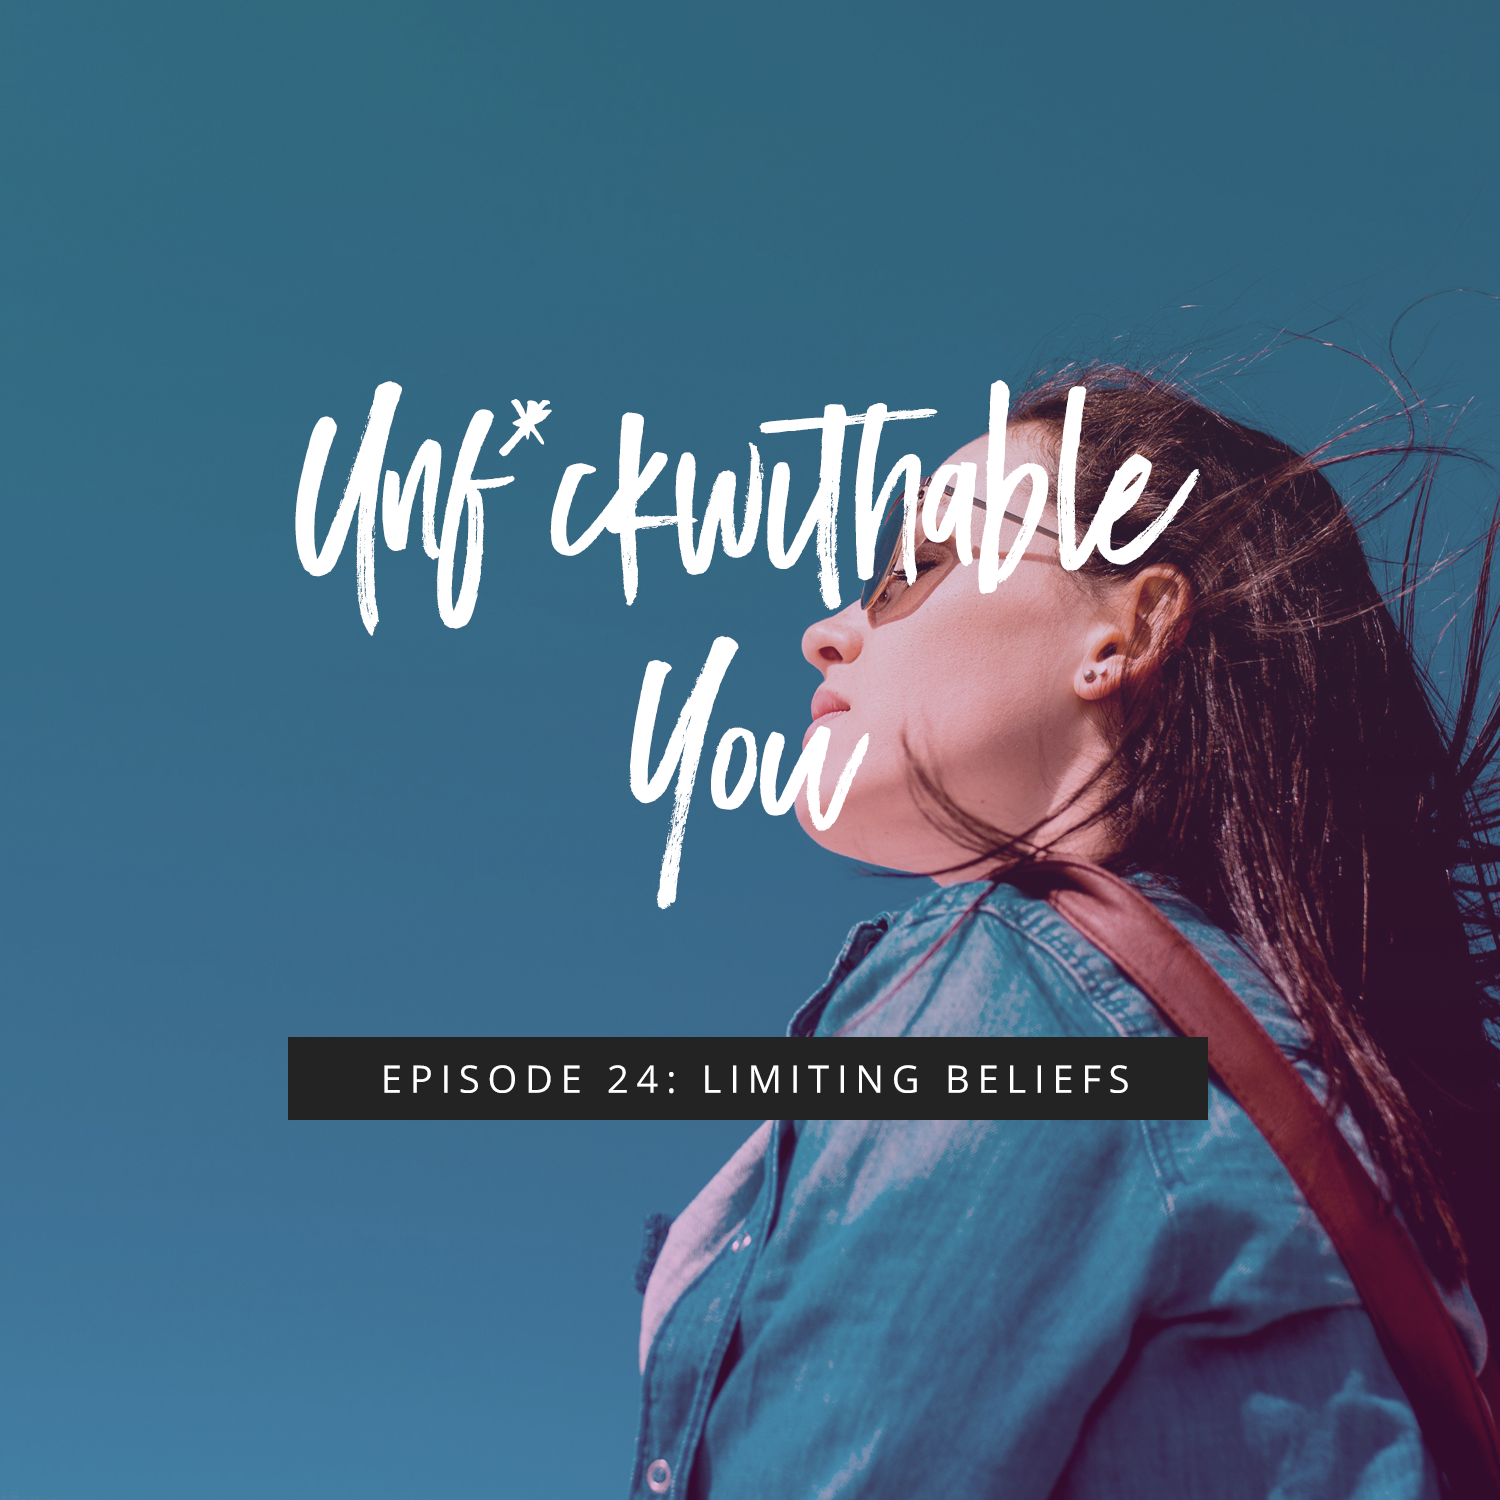 Unf*ckwithable You Episode 24: Limiting Beliefs